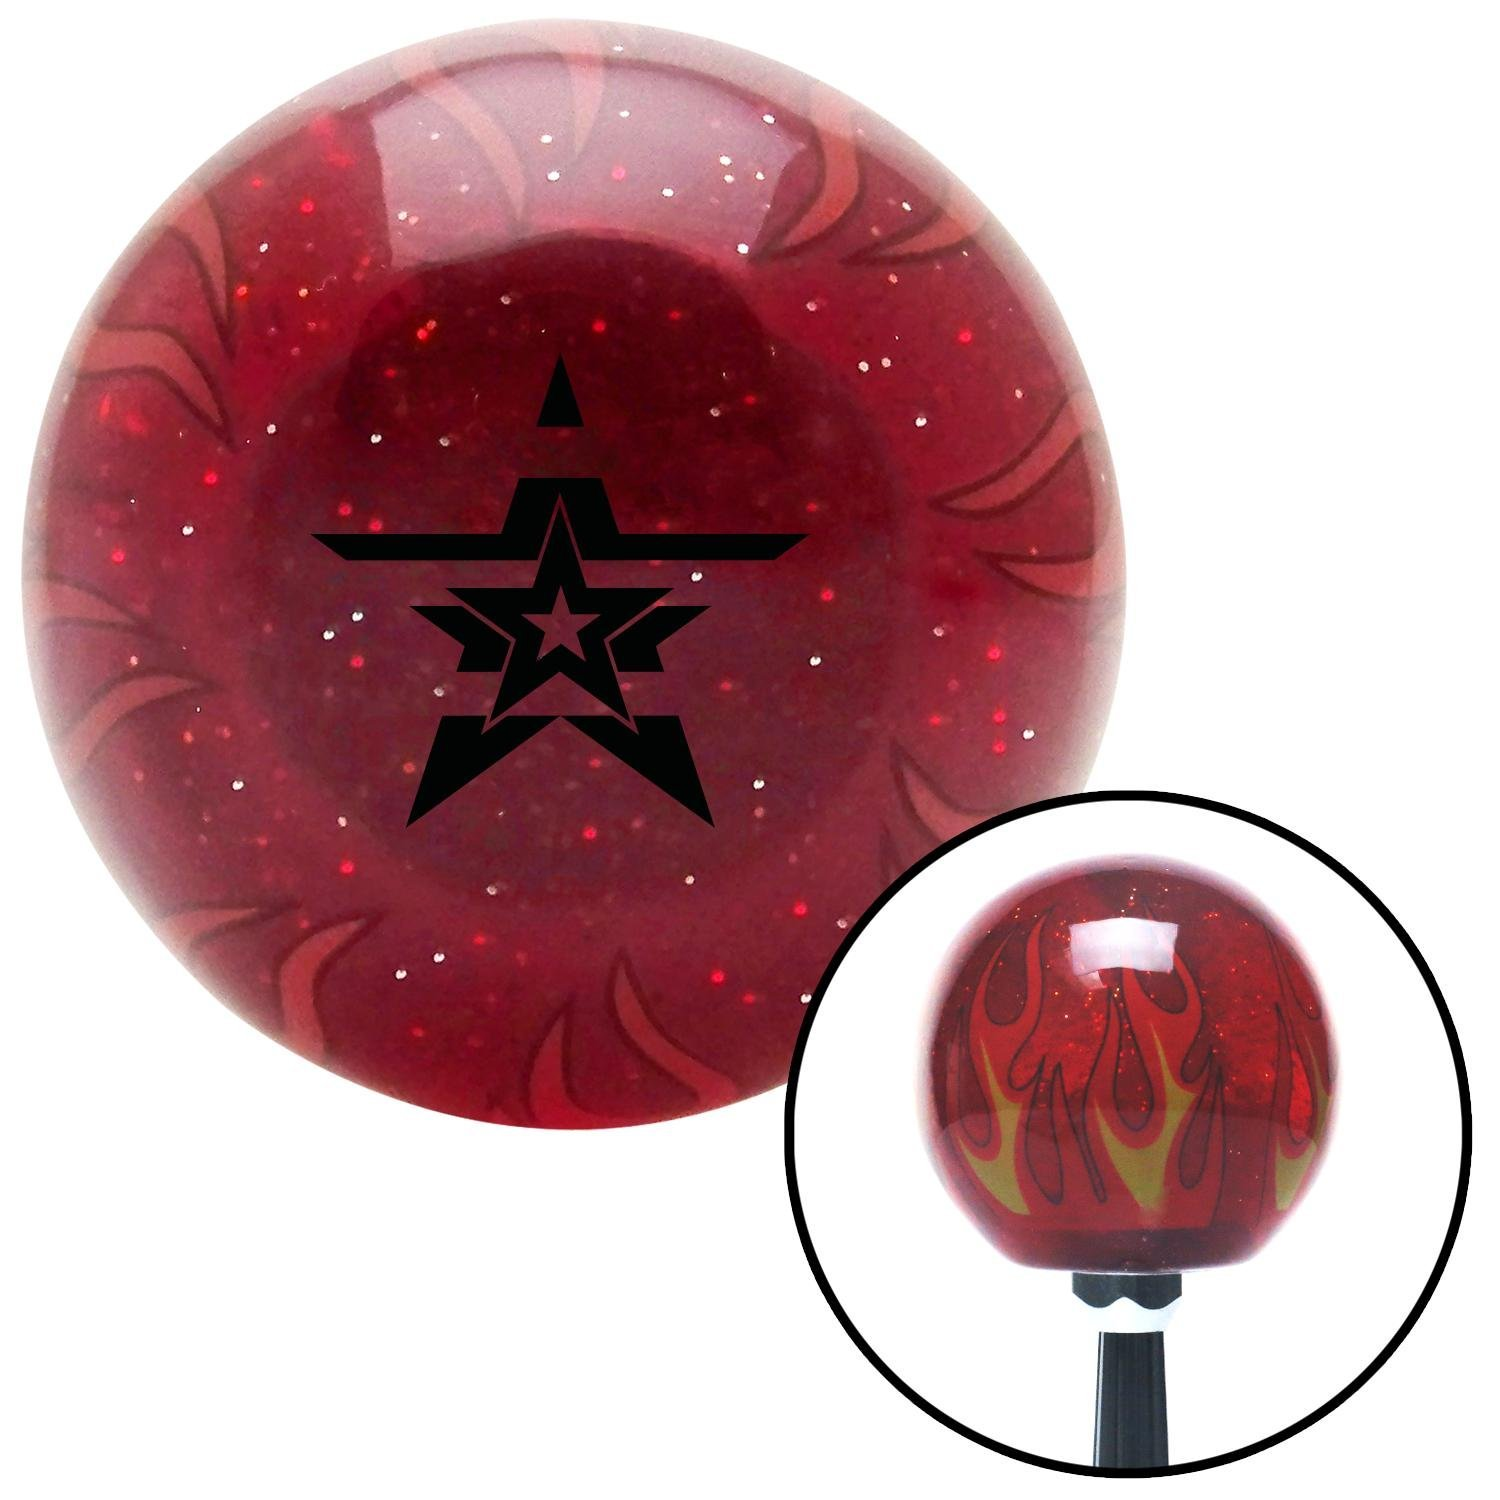 Black Star in a Star in a Star American Shifter 239415 Red Flame Metal Flake Shift Knob with M16 x 1.5 Insert